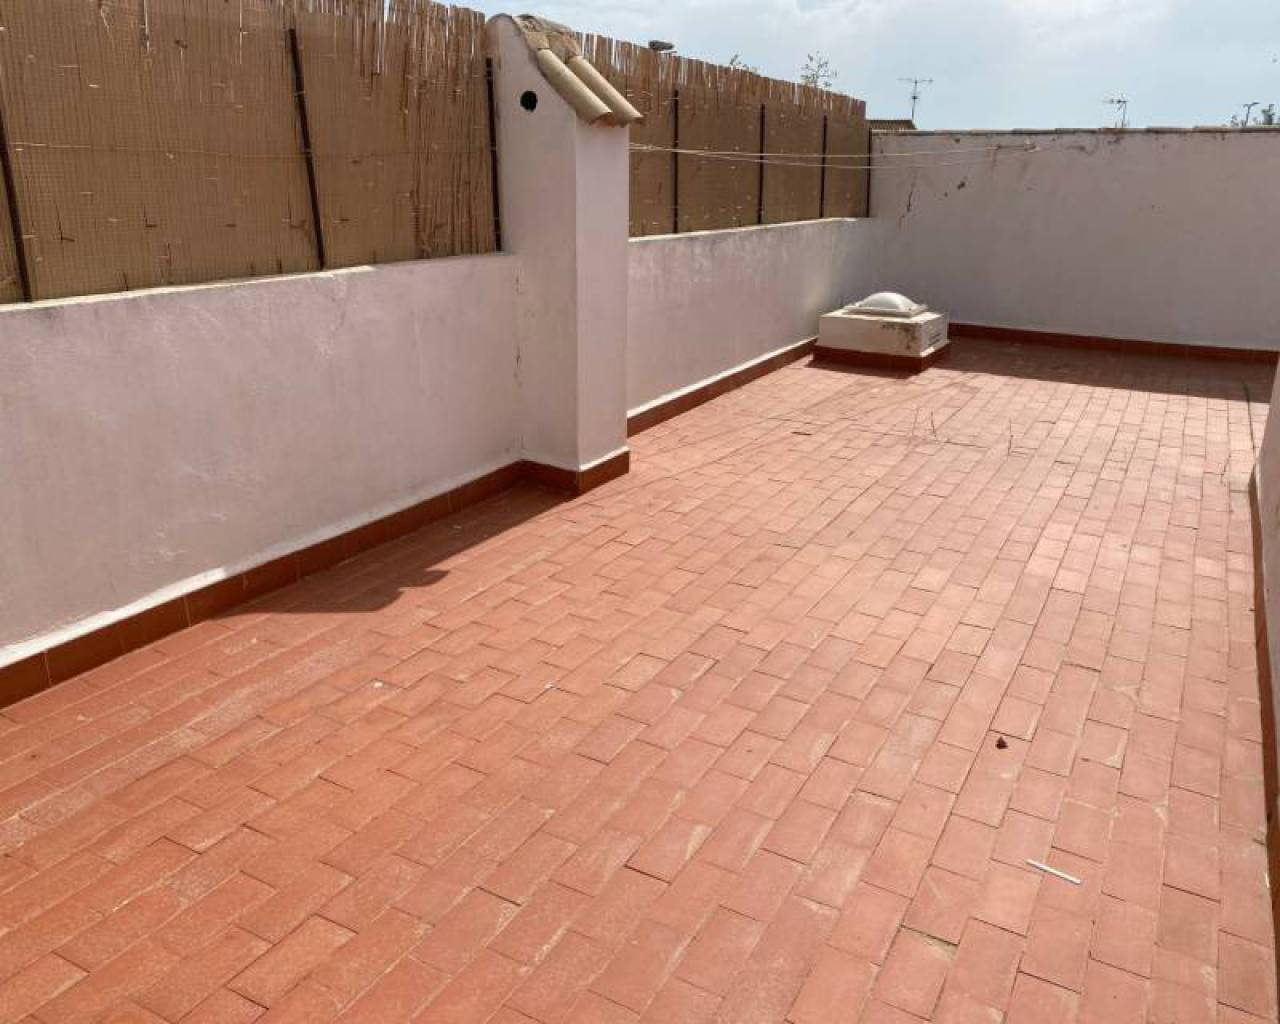 Sale - Semi-detached Villa - La Puebla